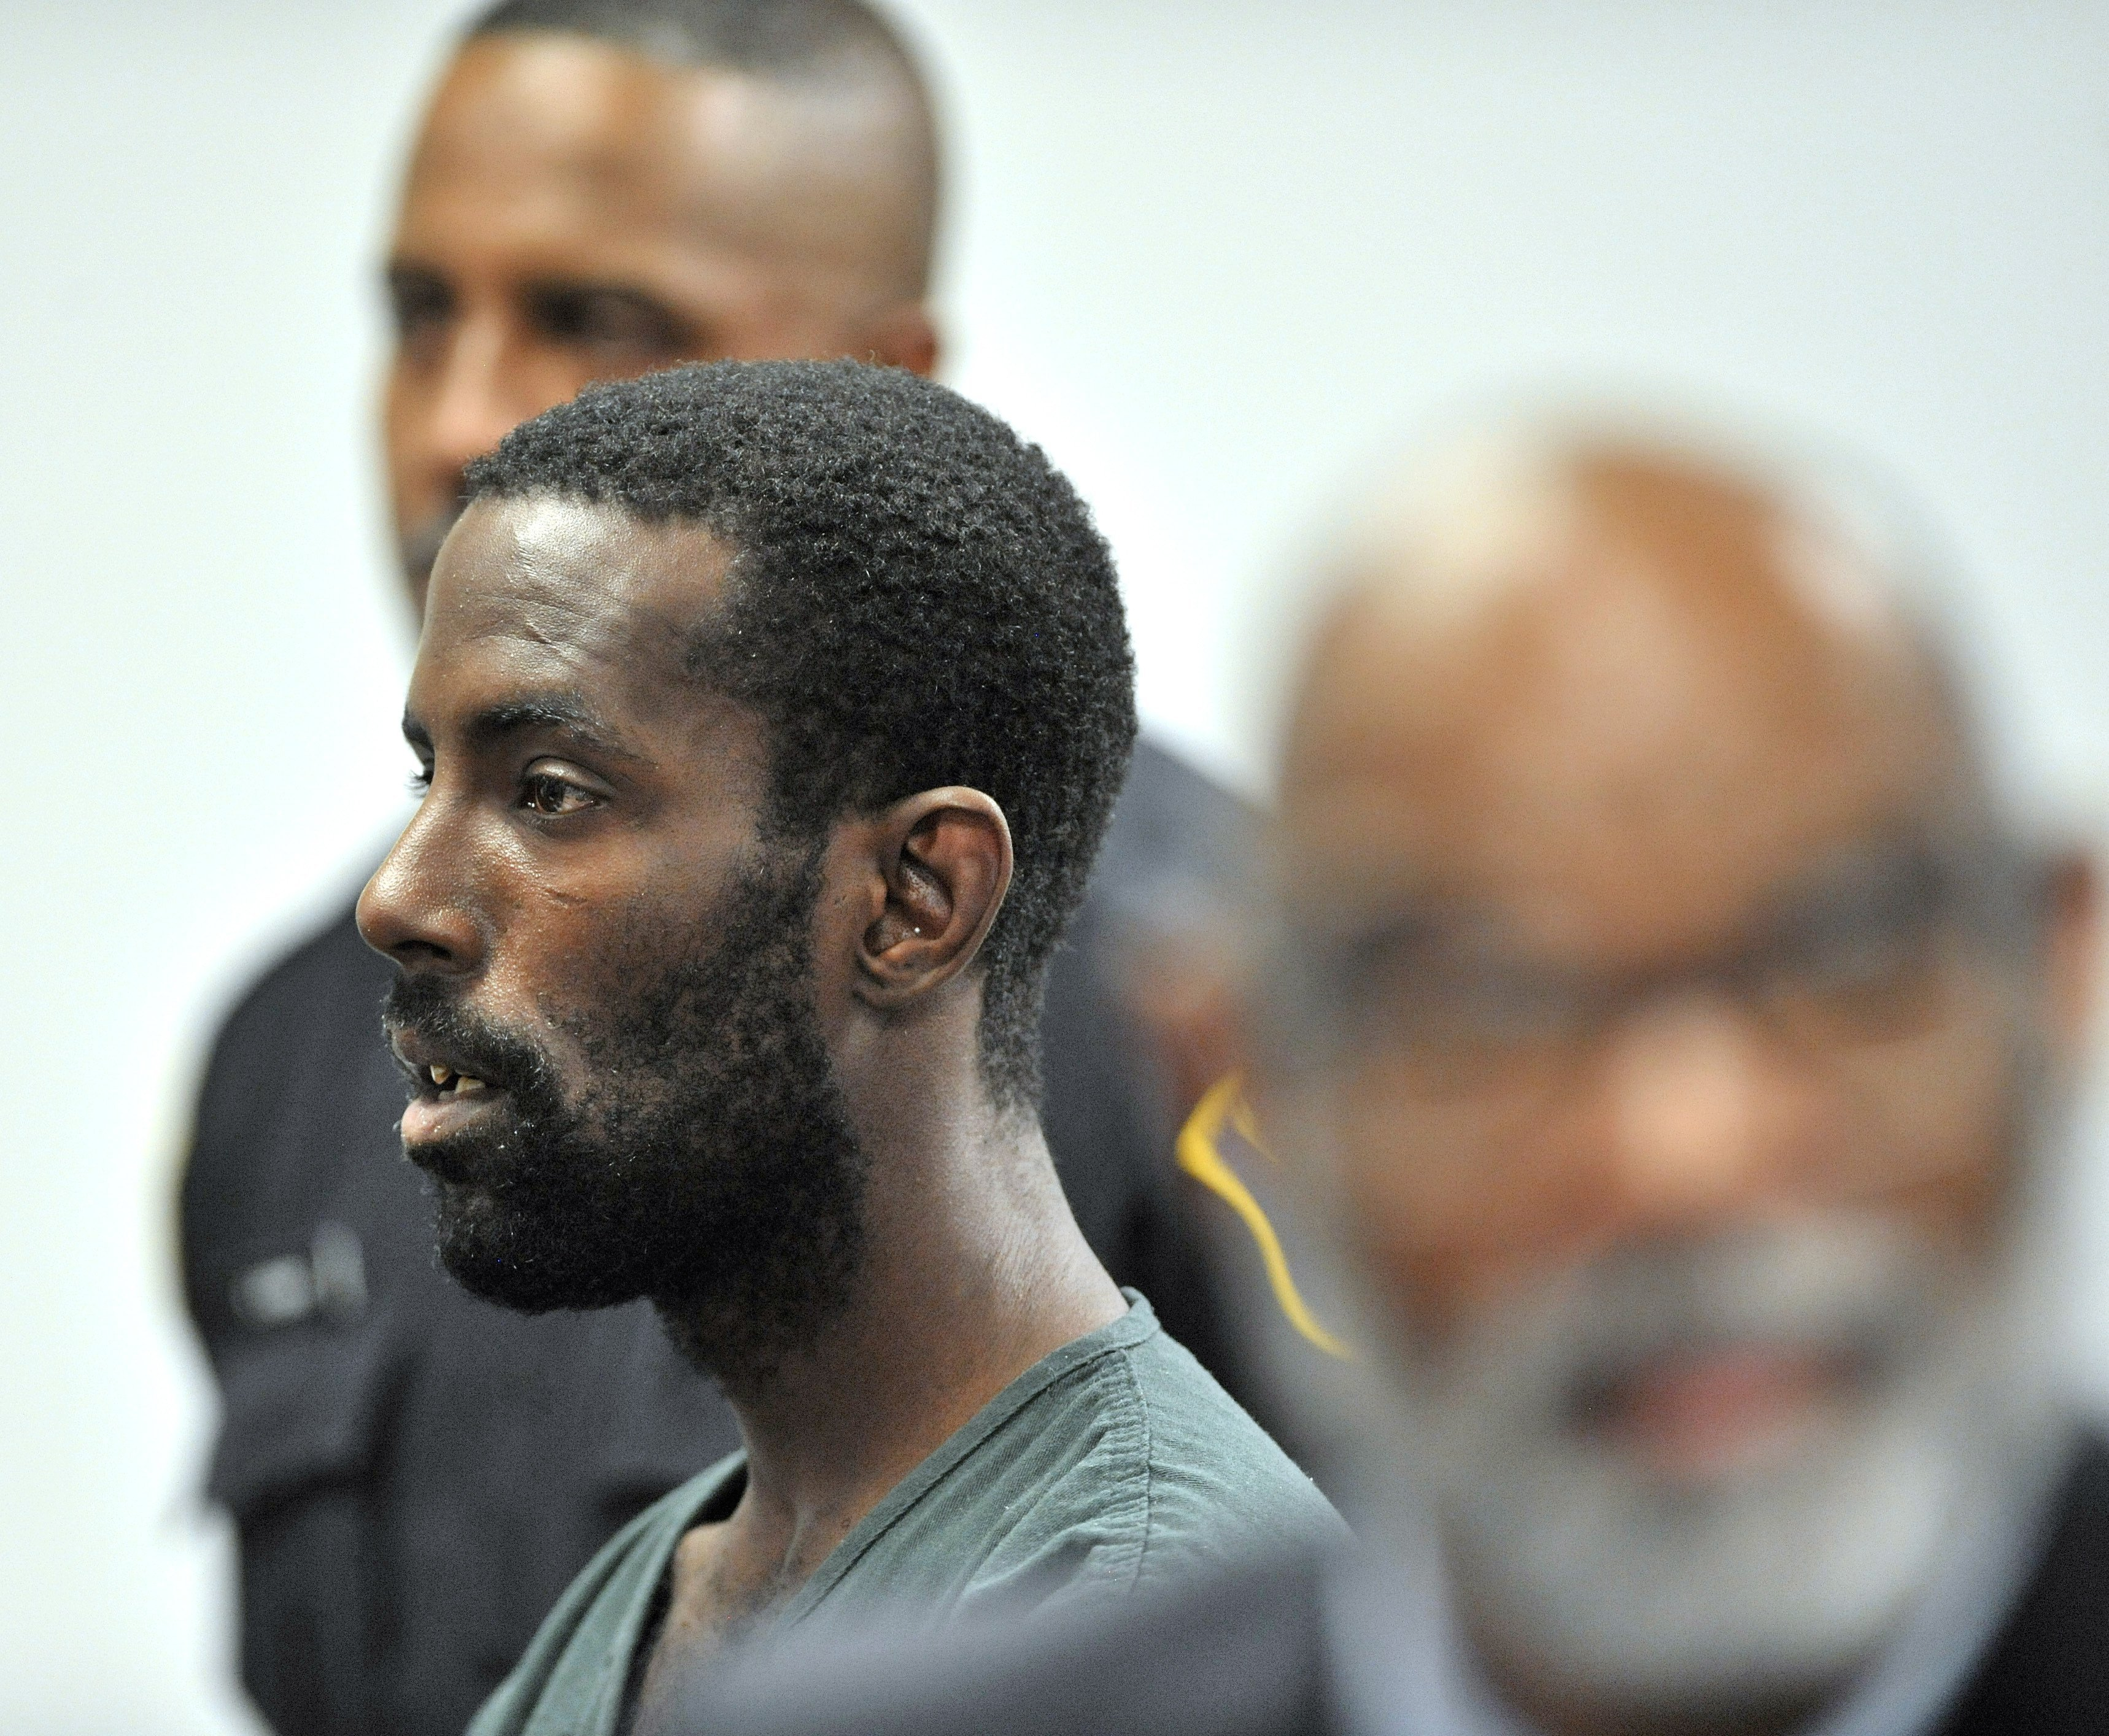 Suspected serial killer charged in deaths of four women in Detroit, prosecutor says